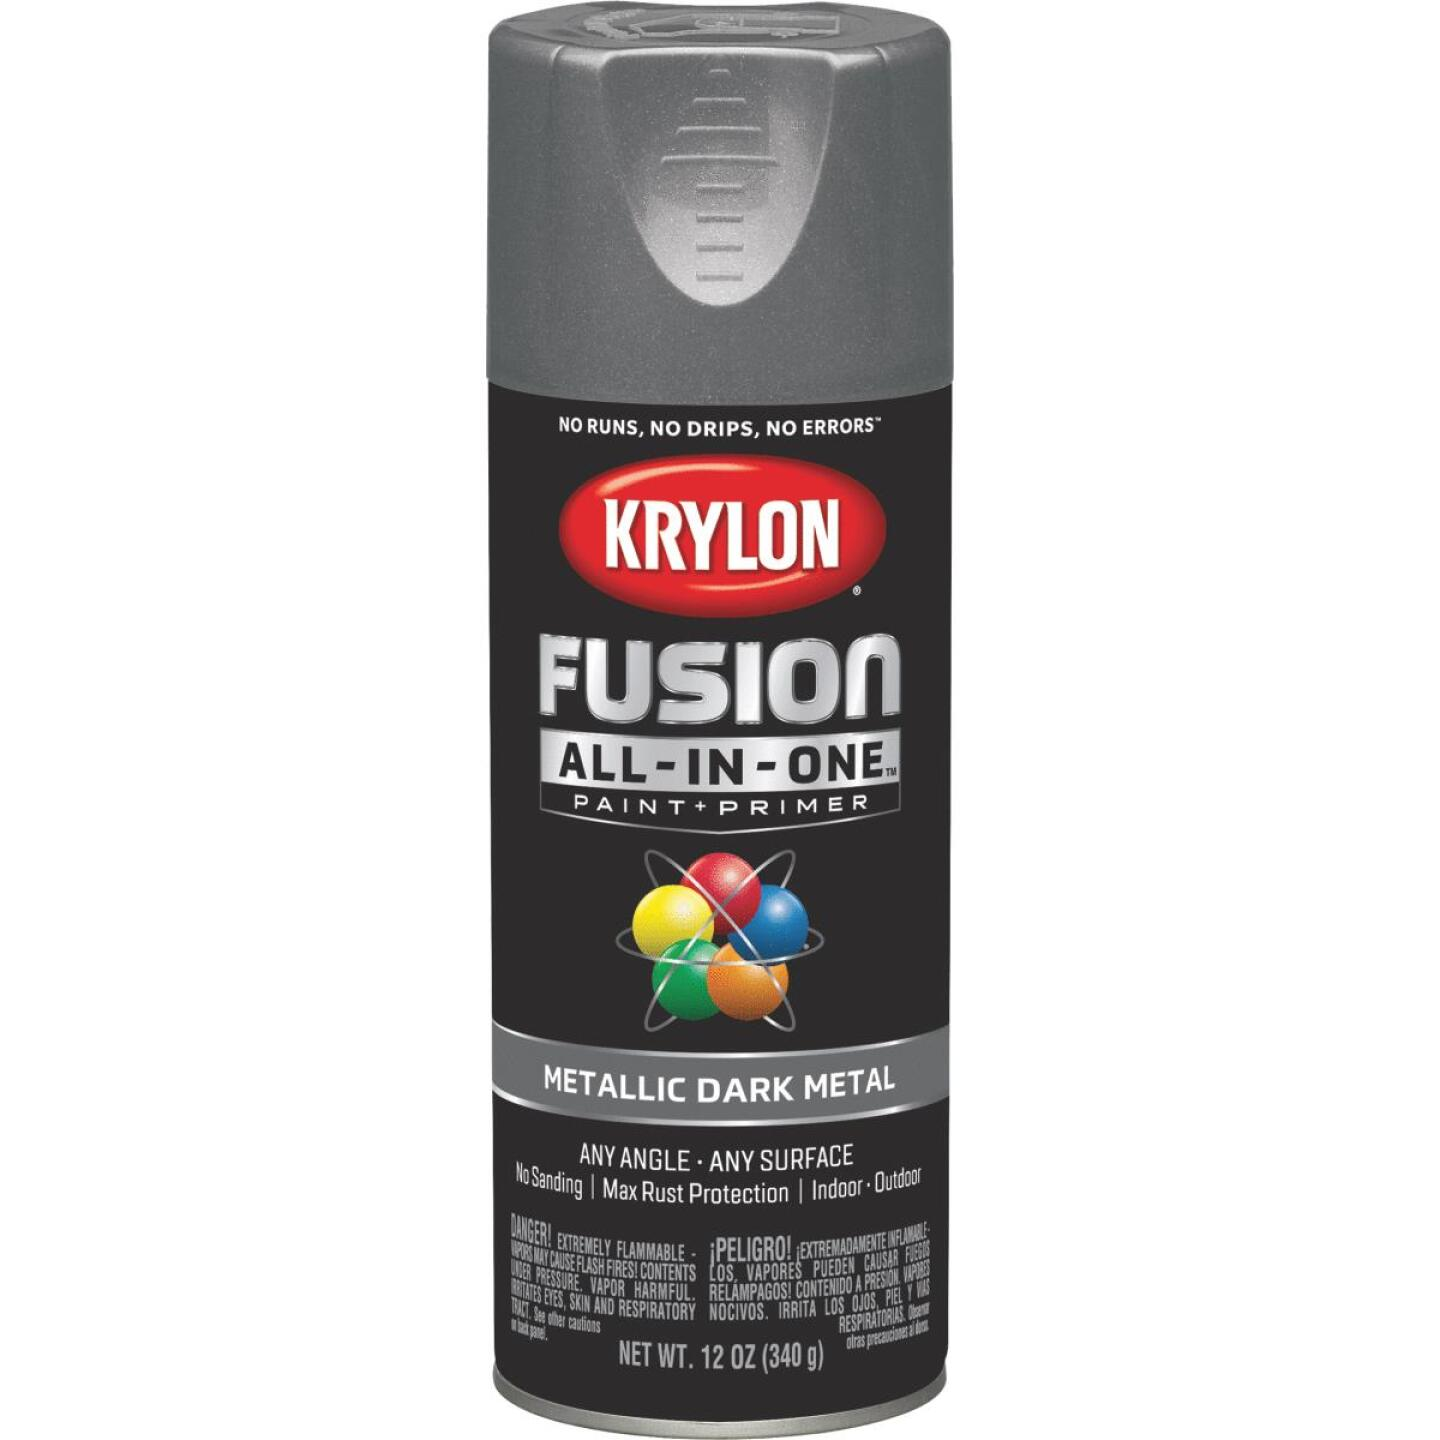 Krylon Fusion All-In-One Metallic Spray Paint & Primer, Dark Metal Image 1